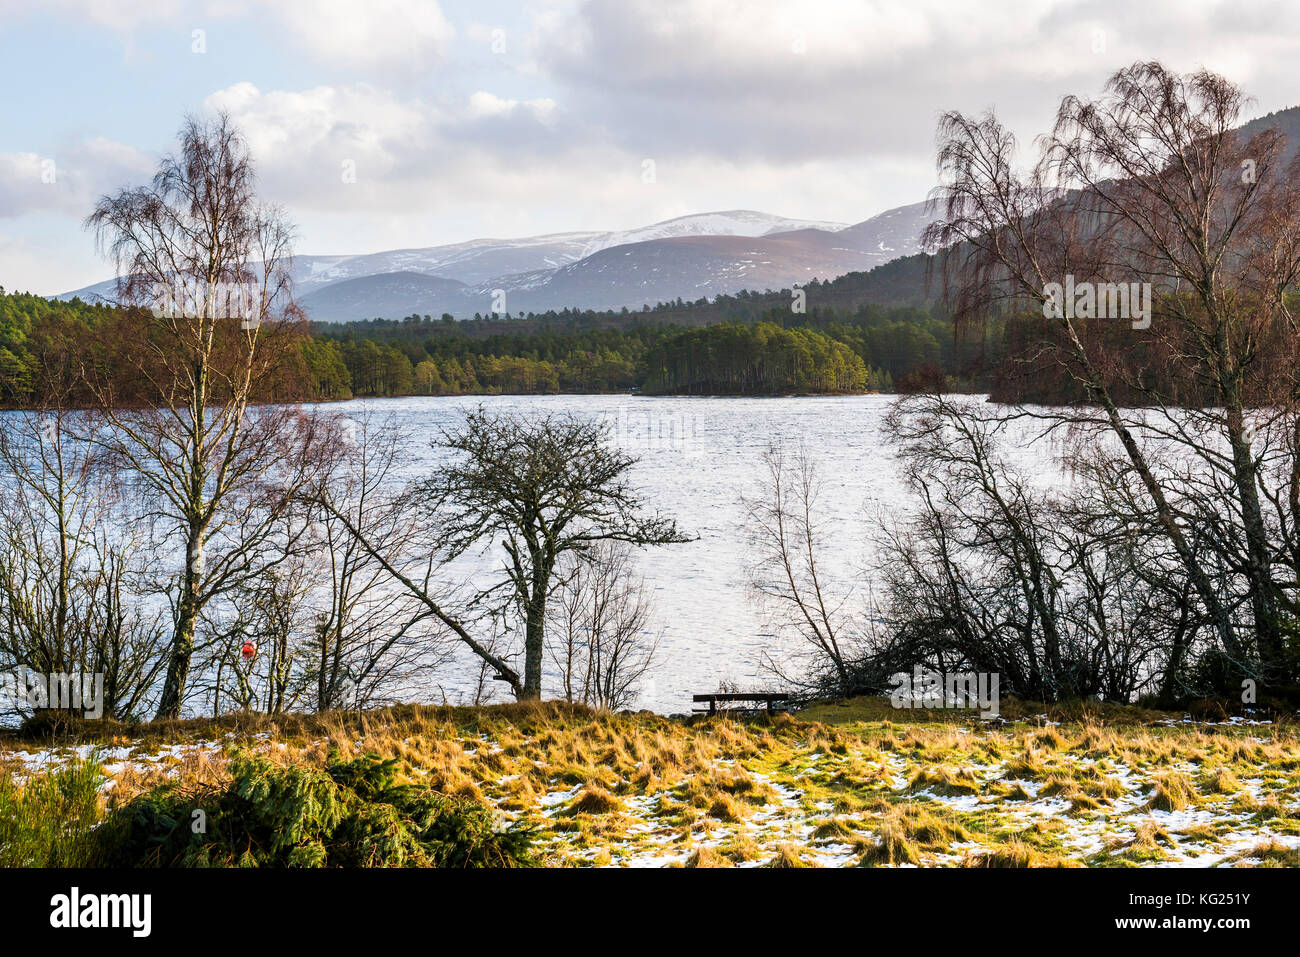 Loch an Eilein with Cairngorm Mountain behind, Aviemore, Cairngorms National Park, Scotland, United Kingdom, Europe - Stock Image